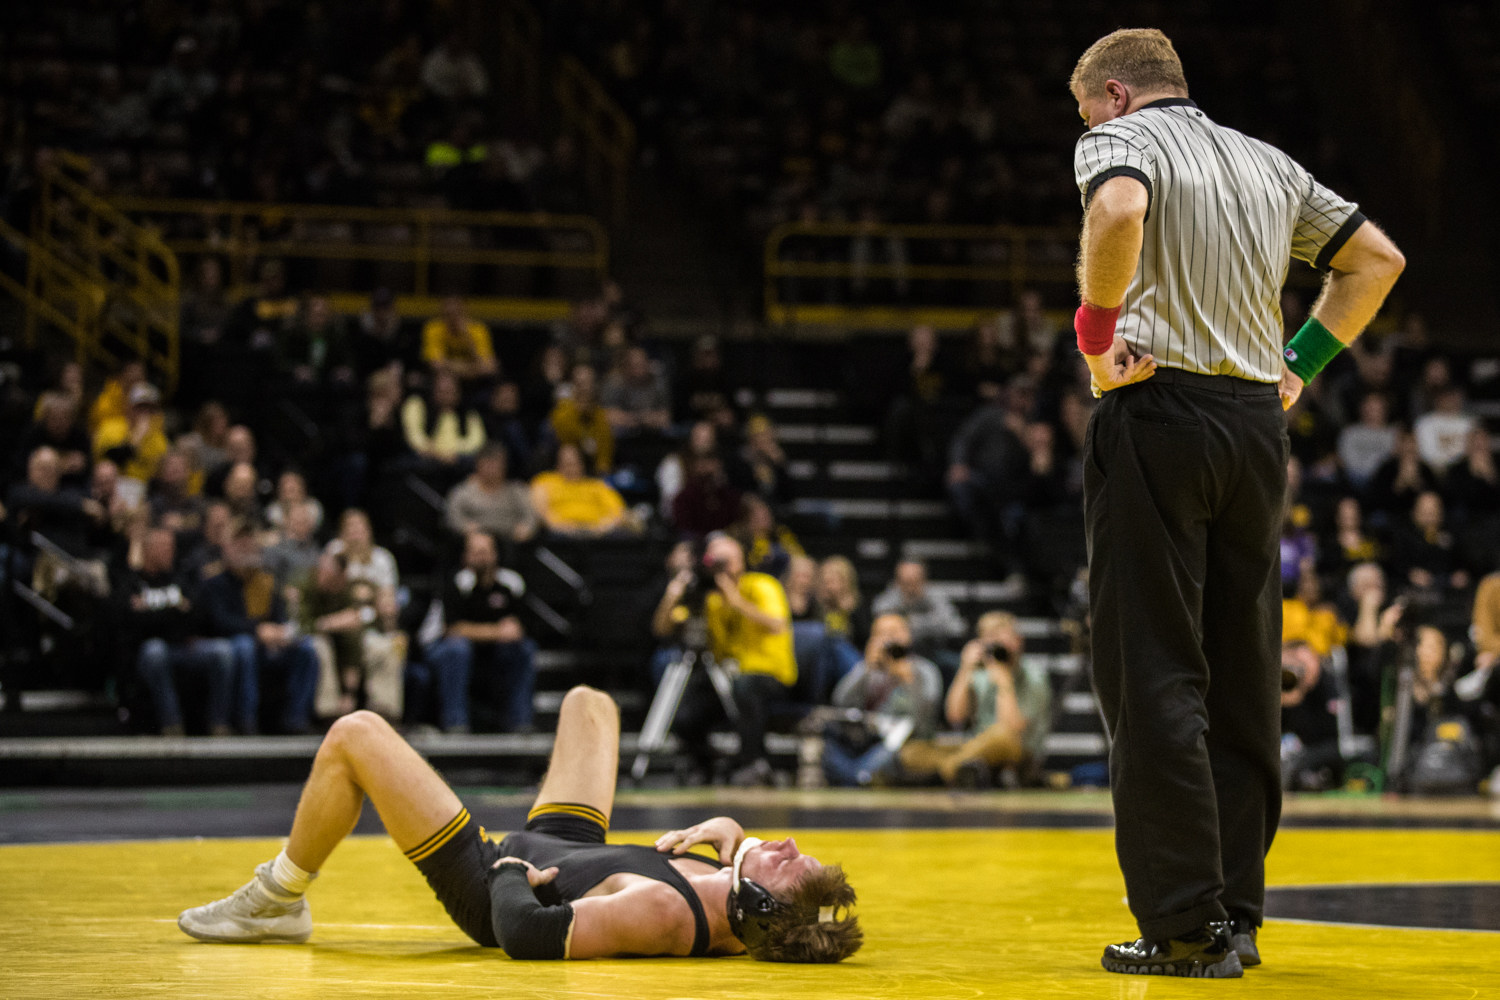 Iowa%27s+No.+14+Max+Murin+wrestles+Indiana%27s+Kyle+Luigs+at+141lb+during+a+wrestling+match+between+Iowa+and+Indiana+at+Carver-Hawkeye+Arena+on+Friday%2C+February+15%2C+2019.+The+Hawkeyes%2C+celebrating+senior+night%2C+defeated+the+Hoosiers+37-9.